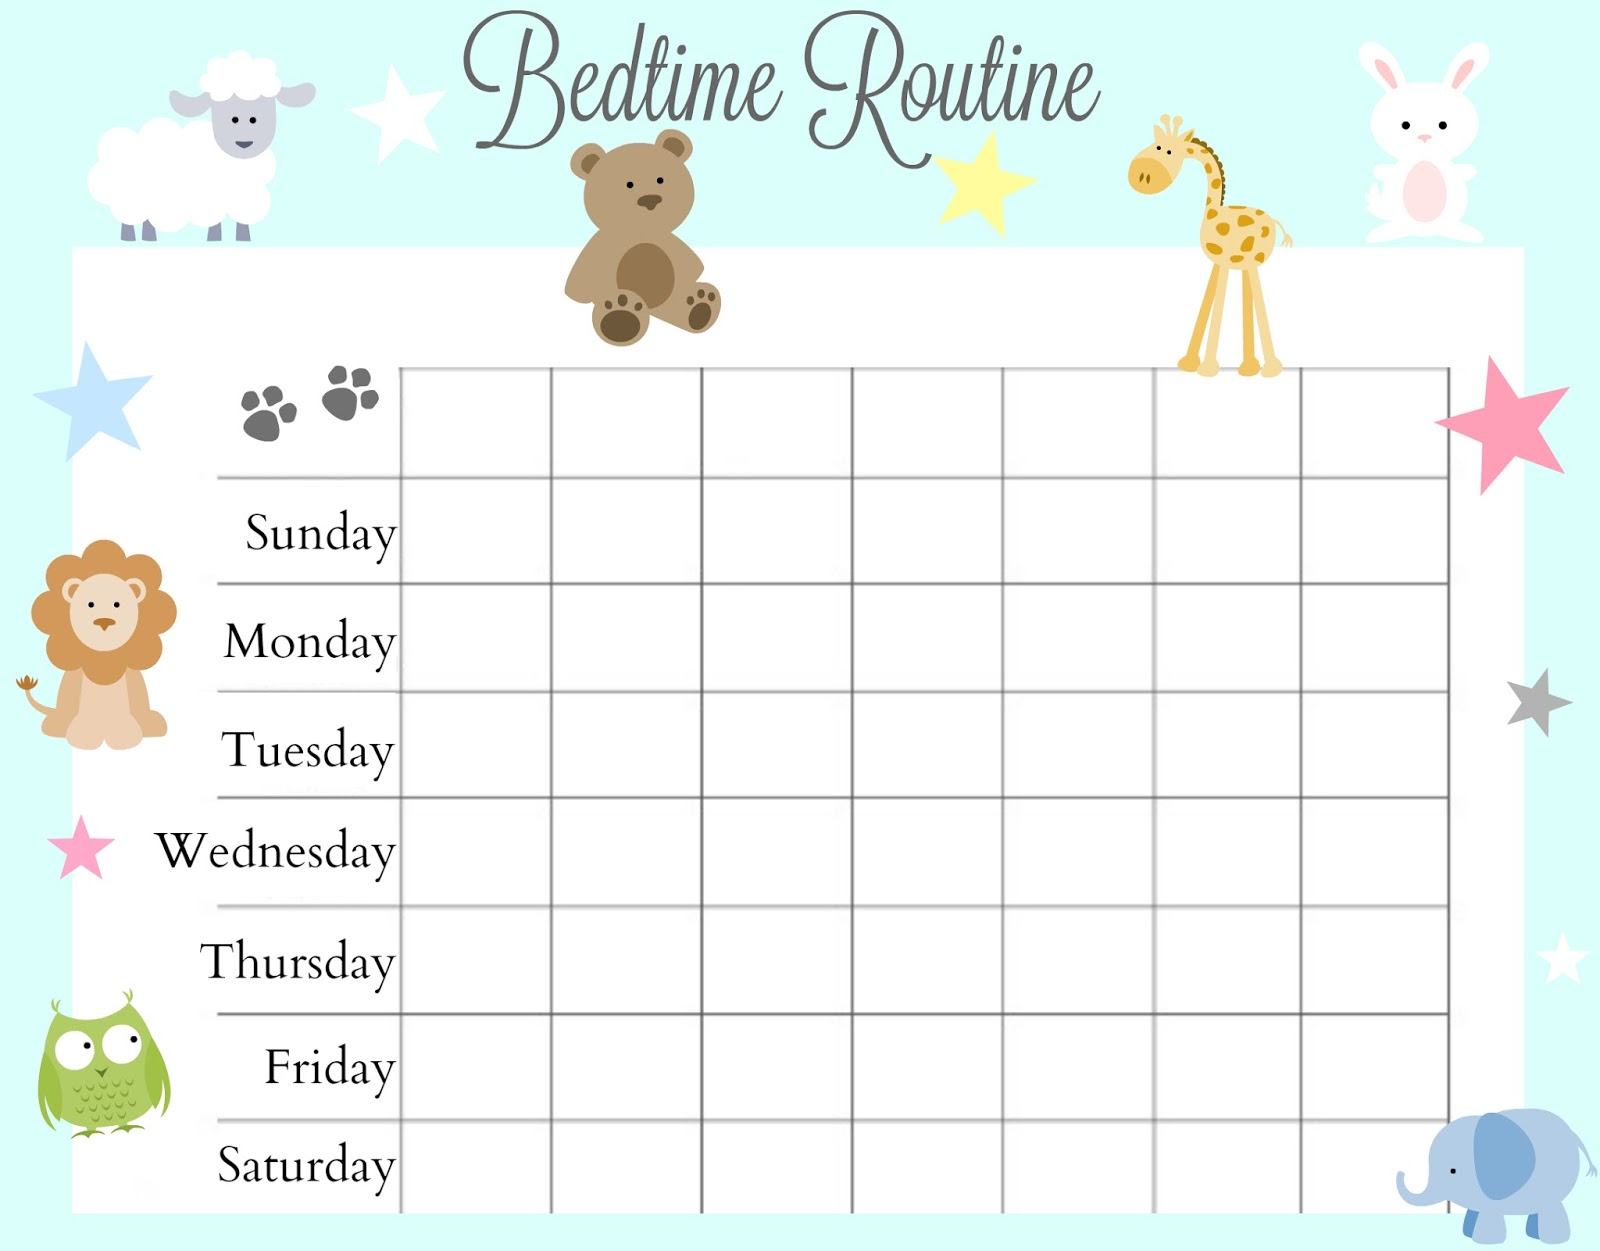 Guide For Effective Bedtime Routine Using Elo Pillow